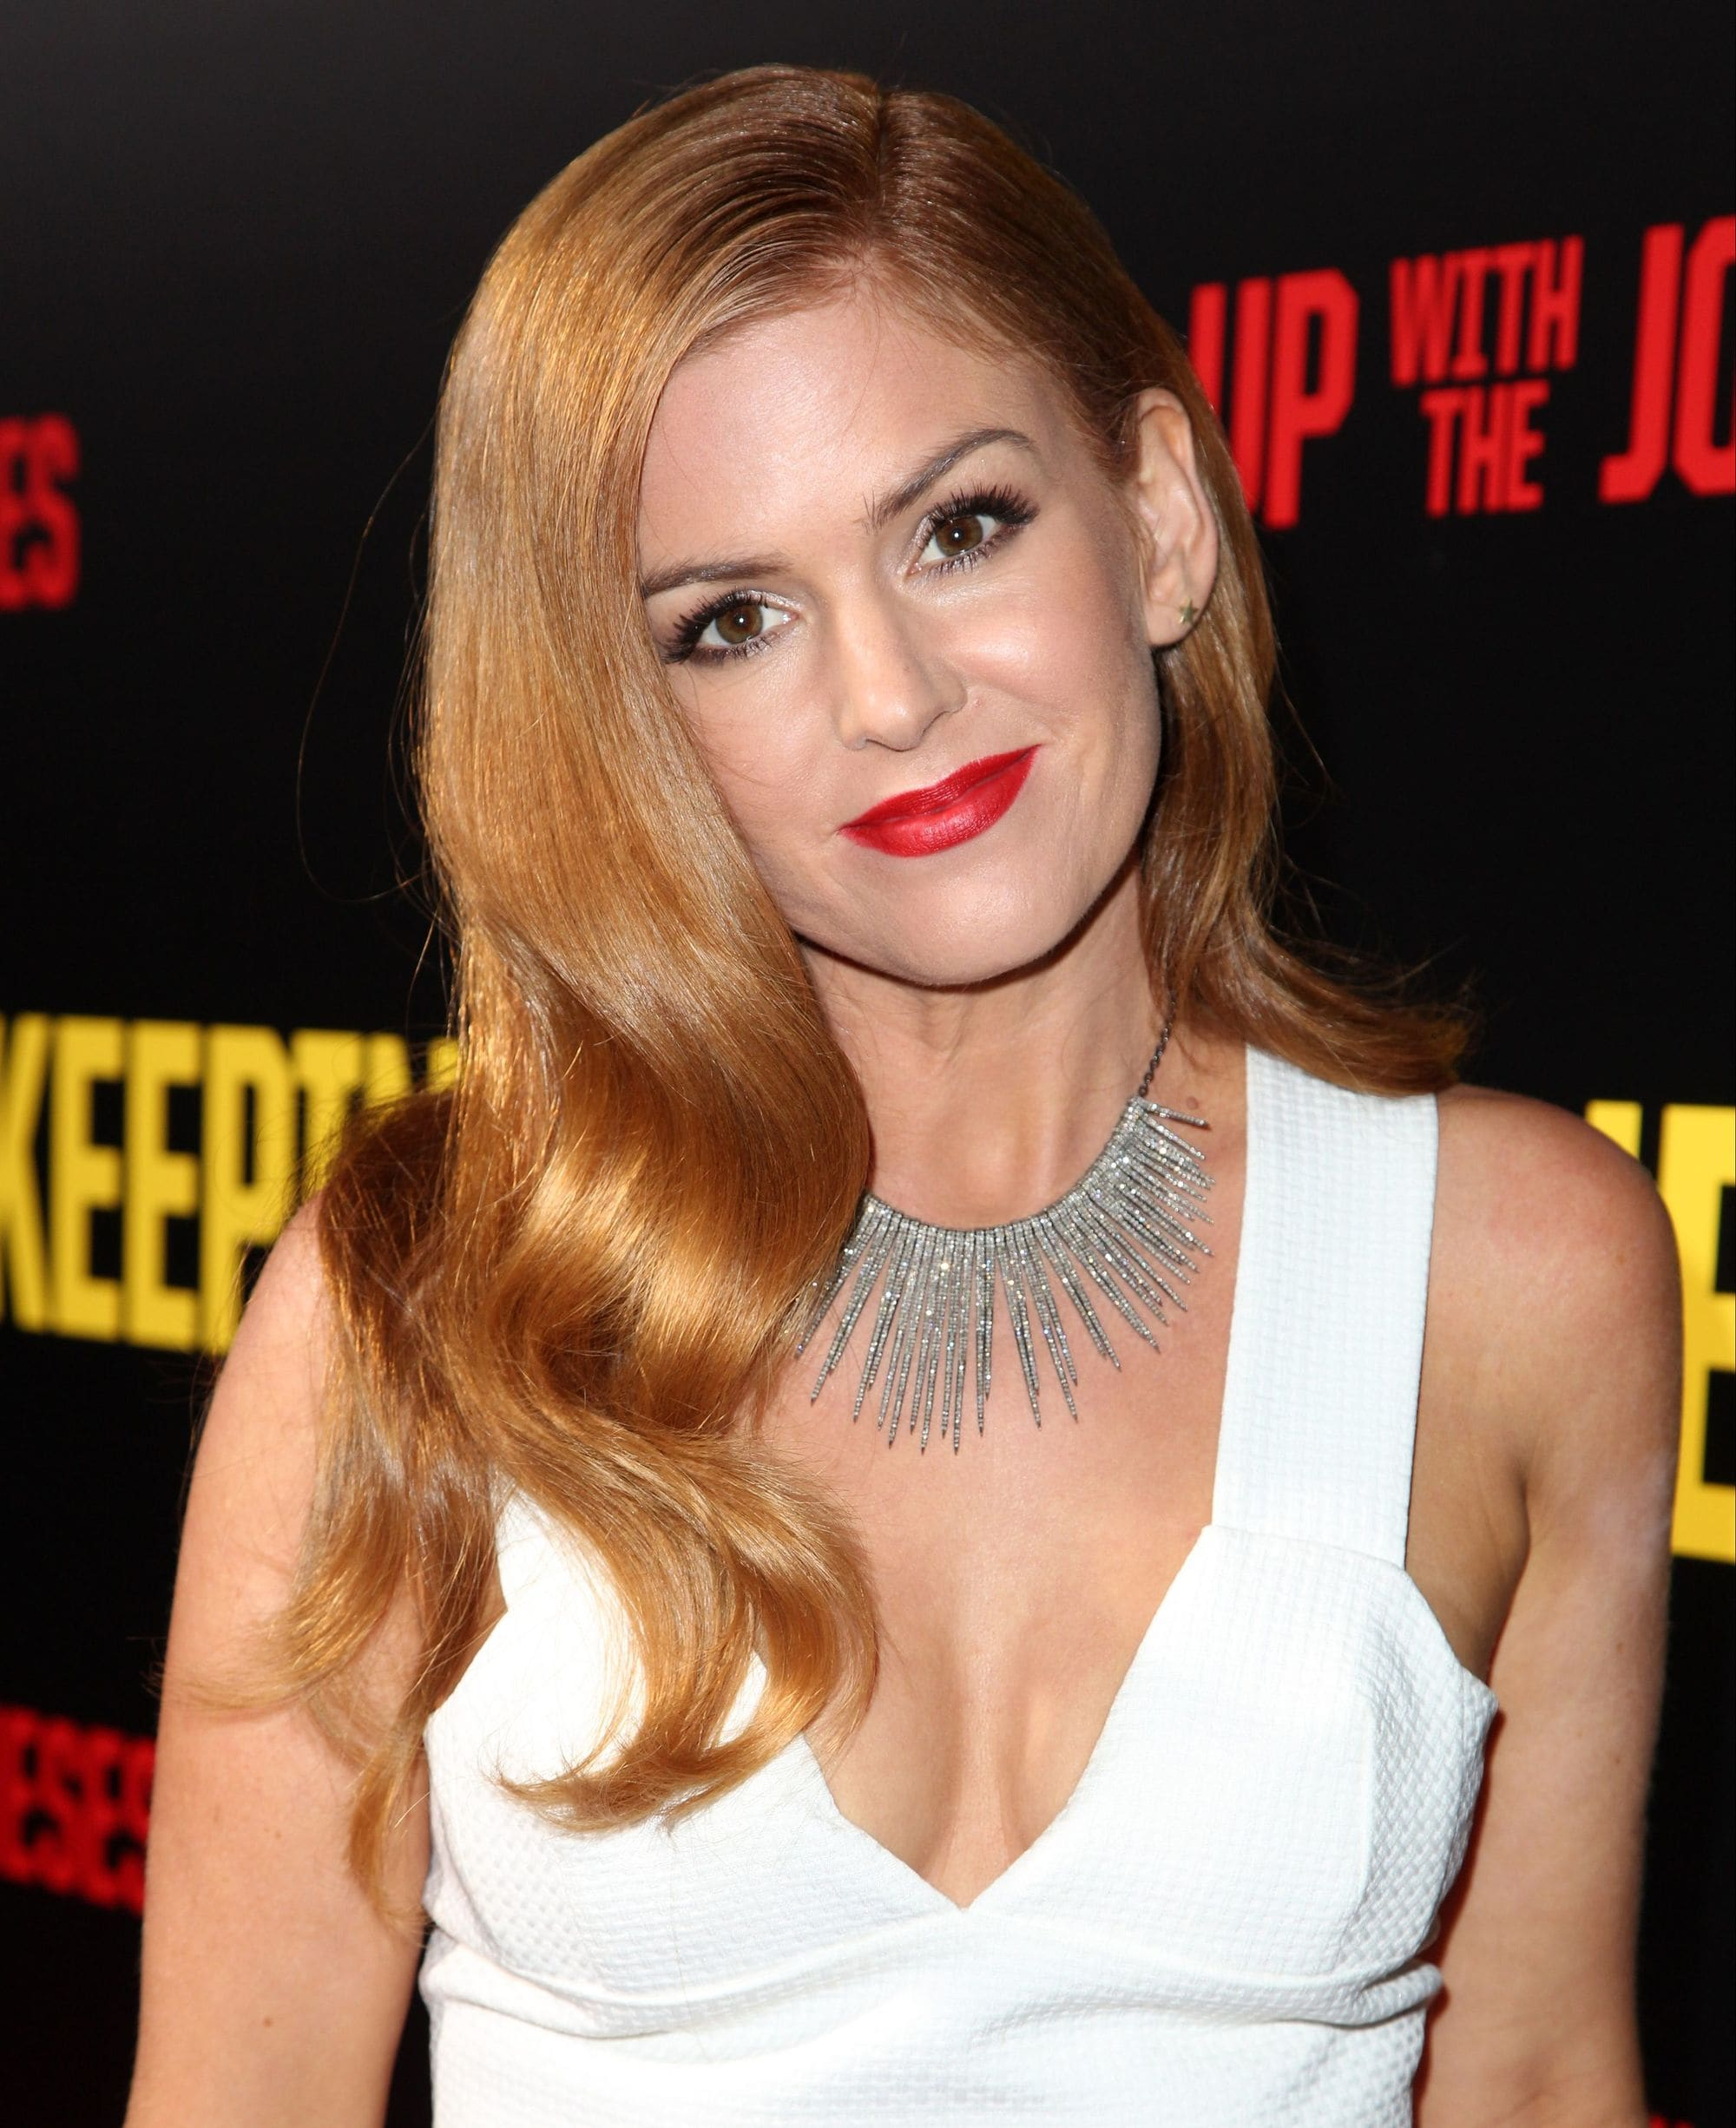 isla fisher on the red carpet with her red hair in hollywood waves